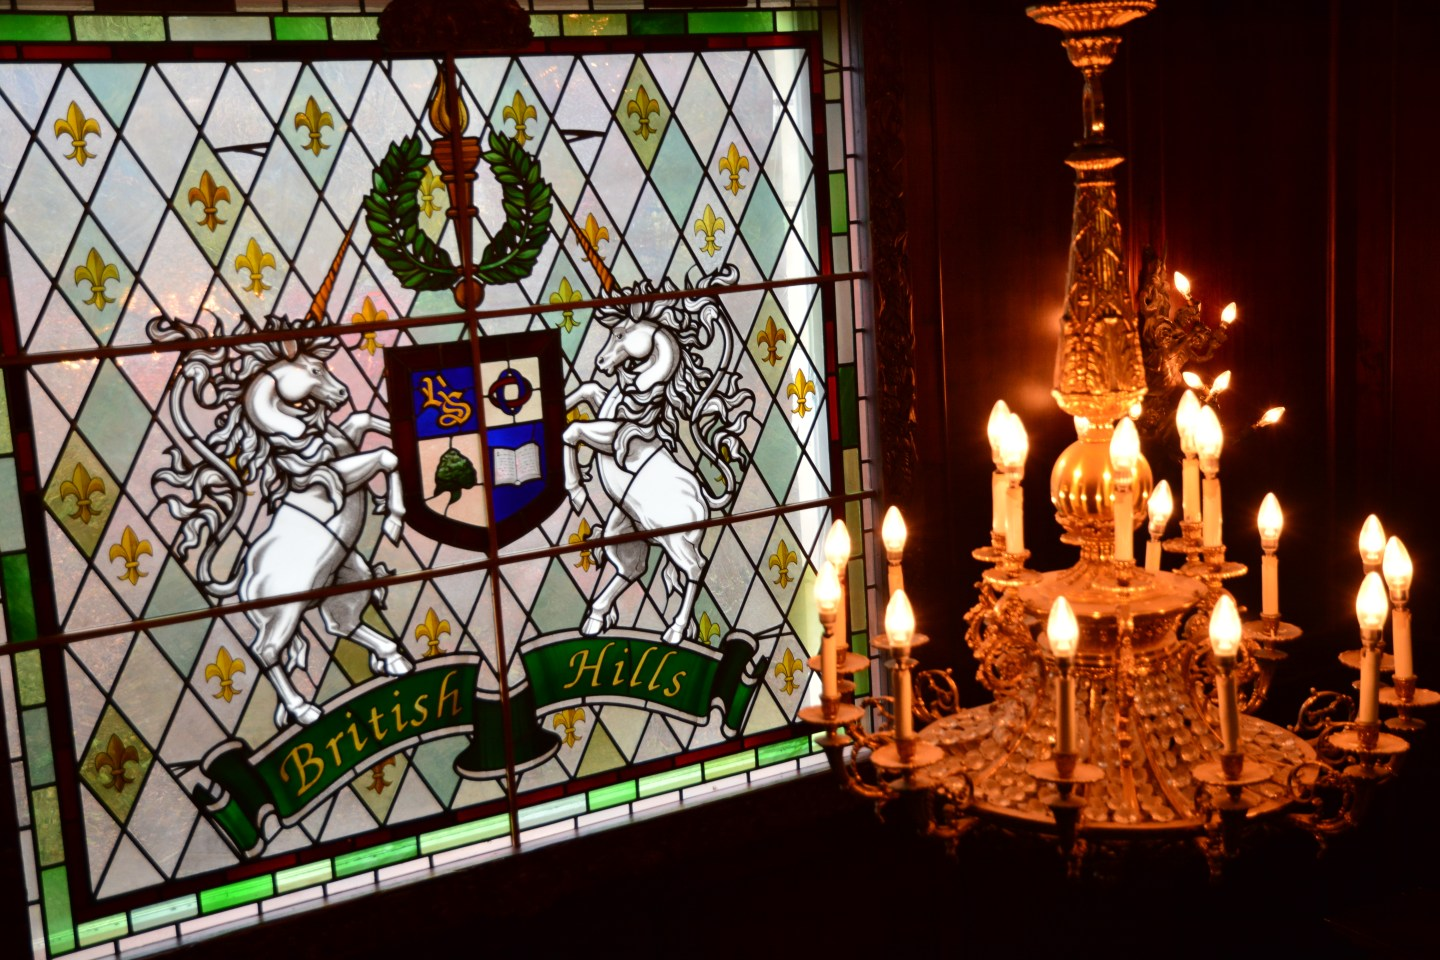 This is the British Hills coat of arms stained glass. This was made in the Cathedral workshop in Wiltshire, where they have been producing these for the past 300 years. The design includes traditional heraldic emblems, embodying the principles British Hills hopes to represent.